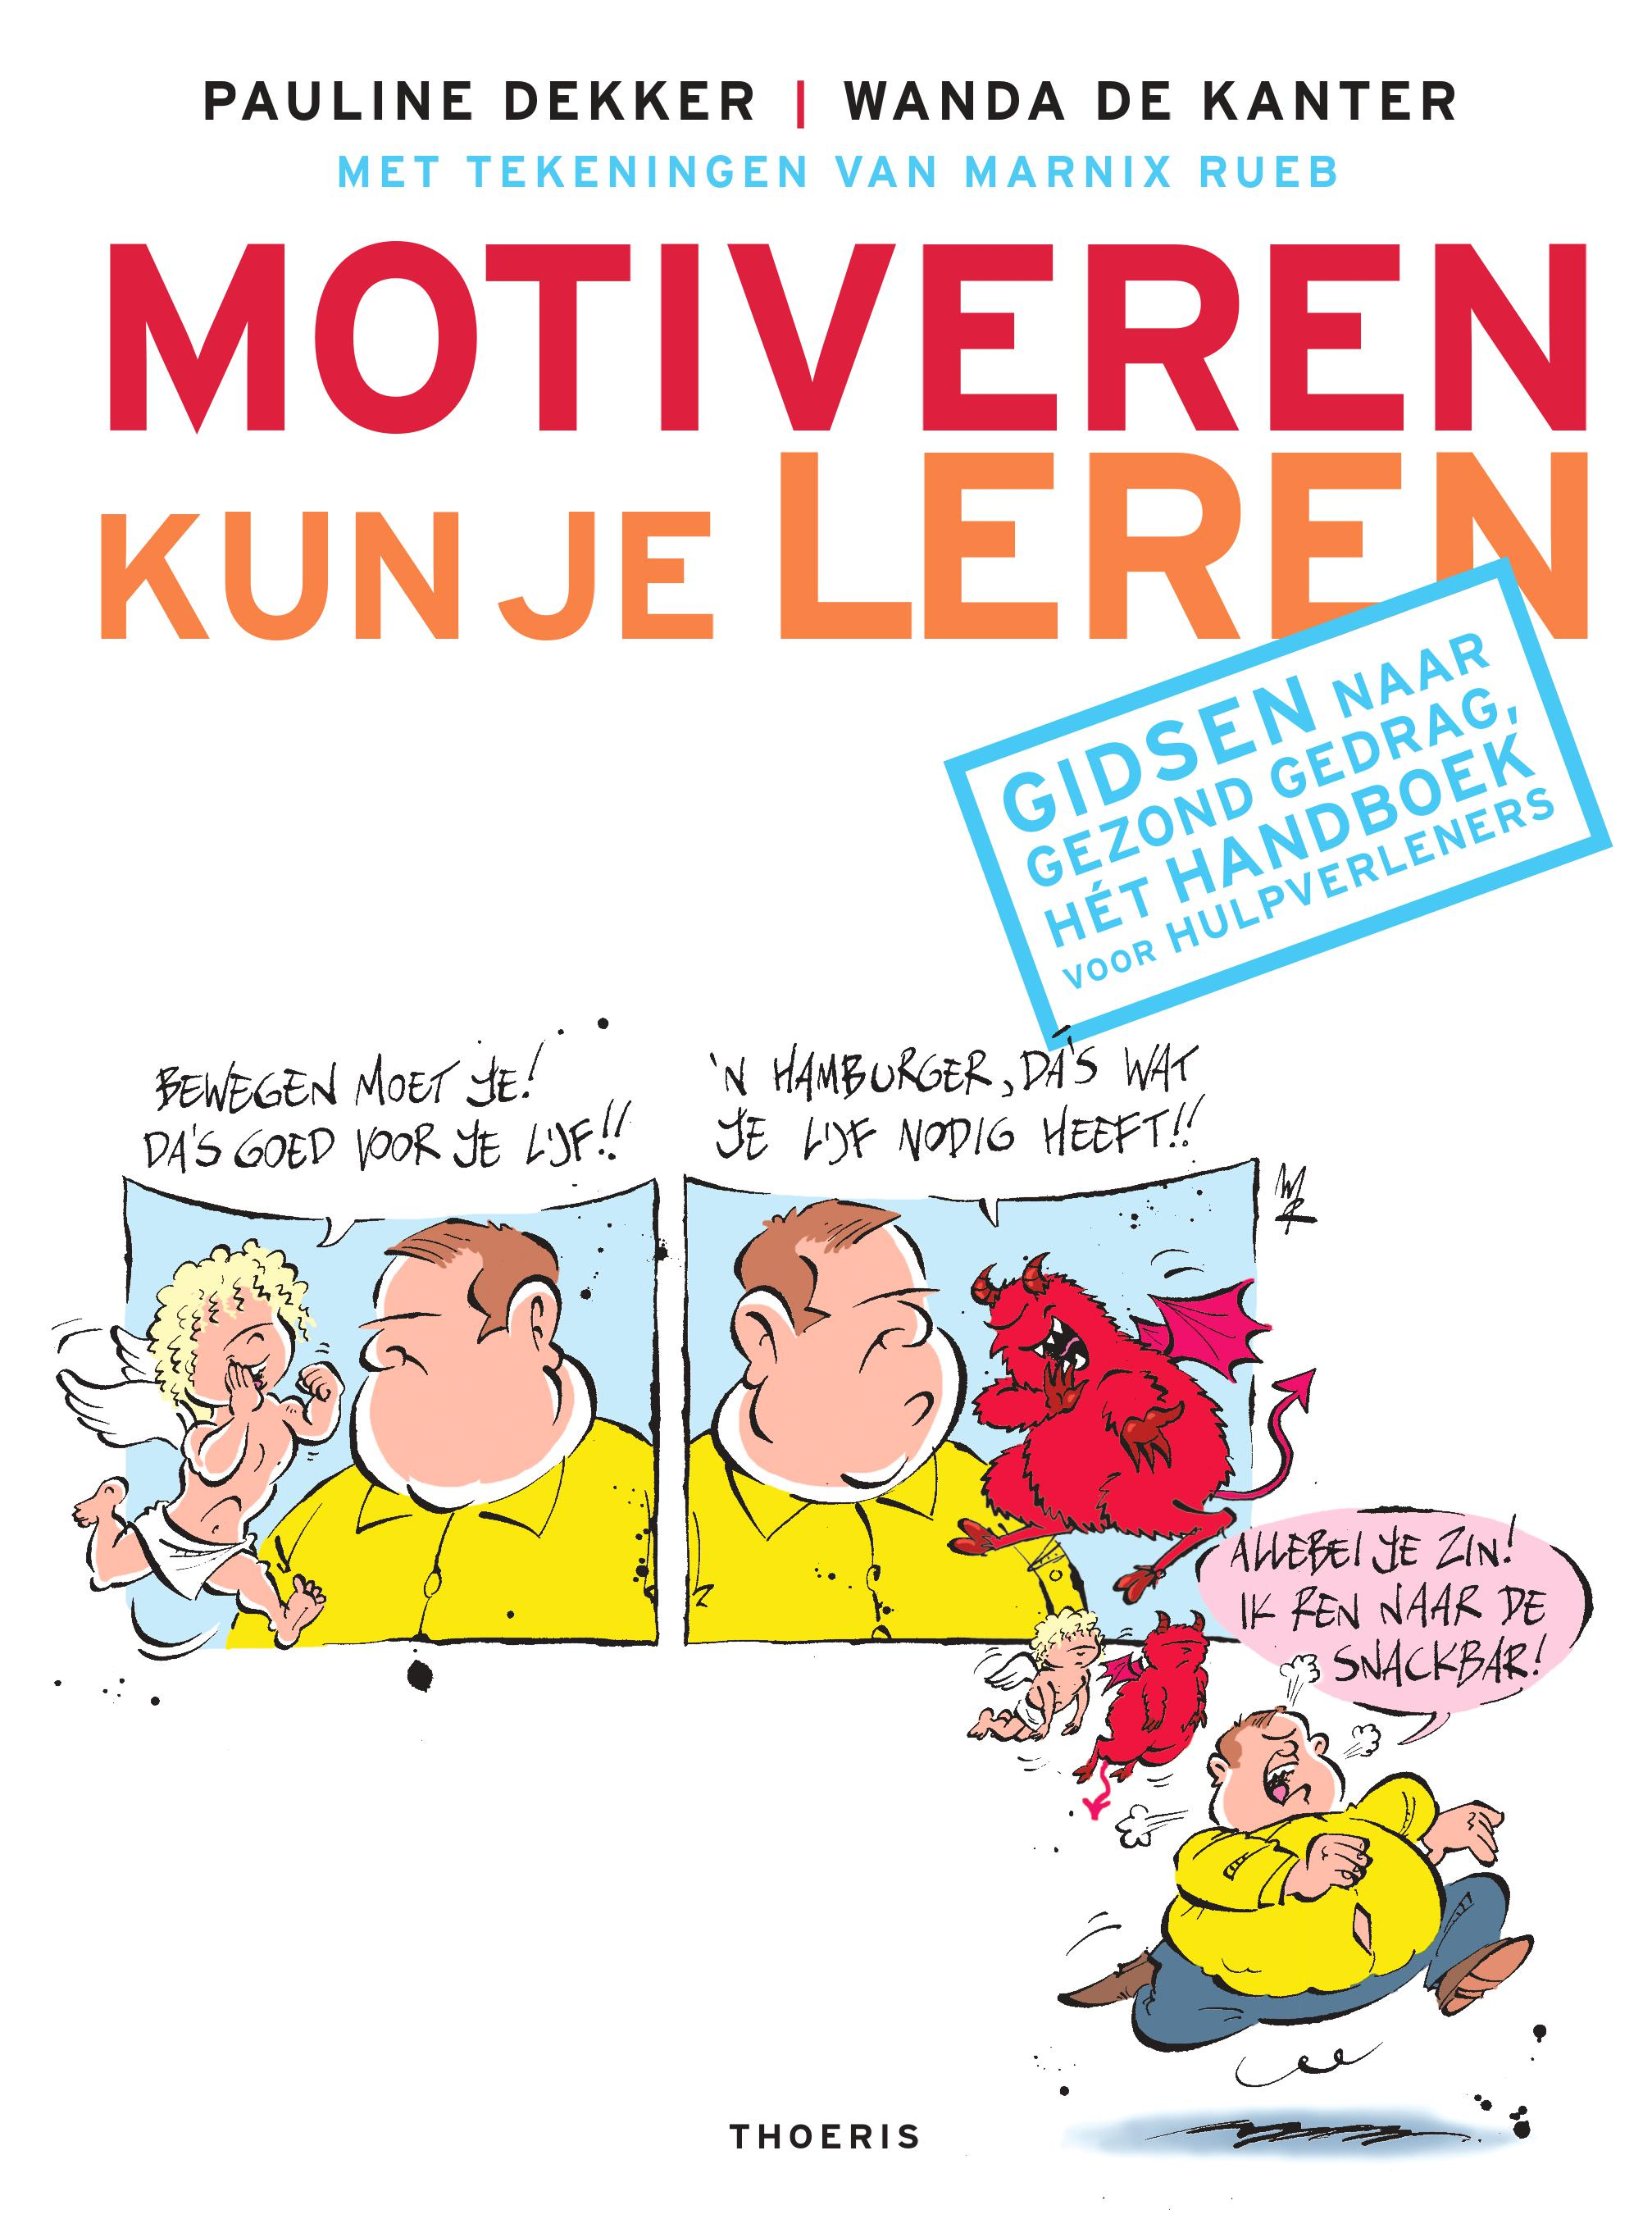 'Motiveren kun je leren'